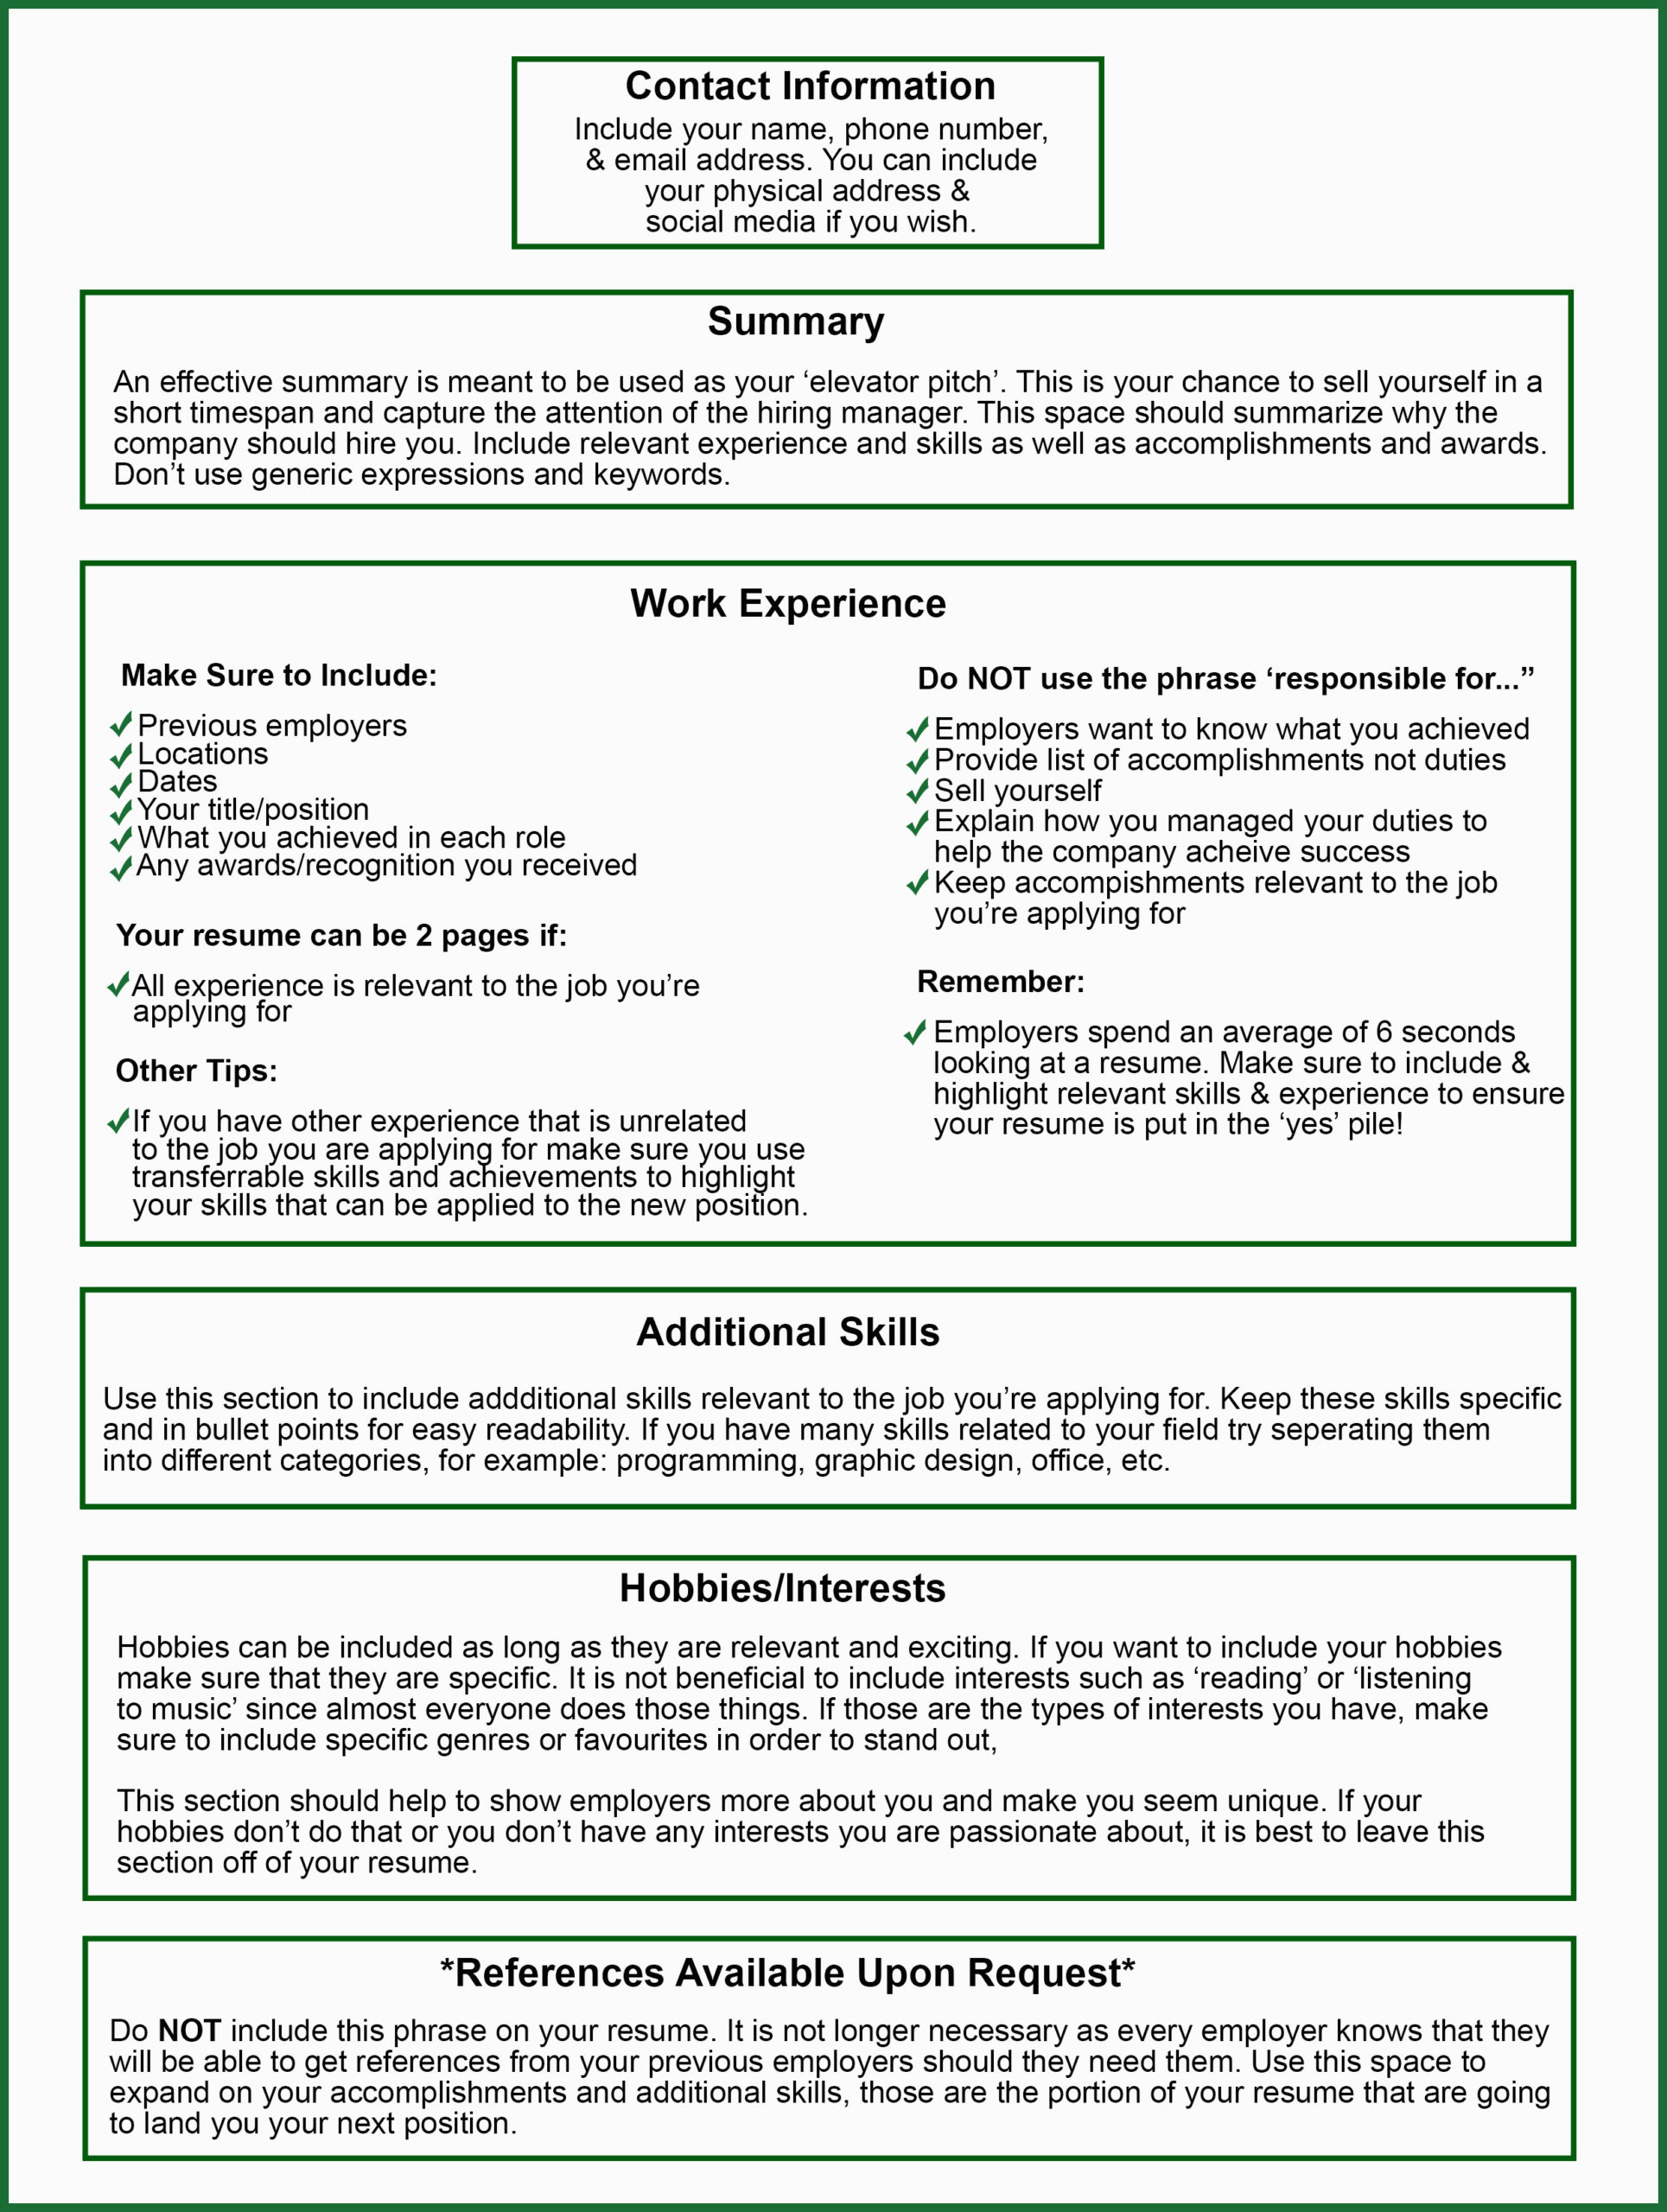 resume writing your breakaway staffing outstanding do best website to examples pay Resume Skills You Should Include On Your Resume